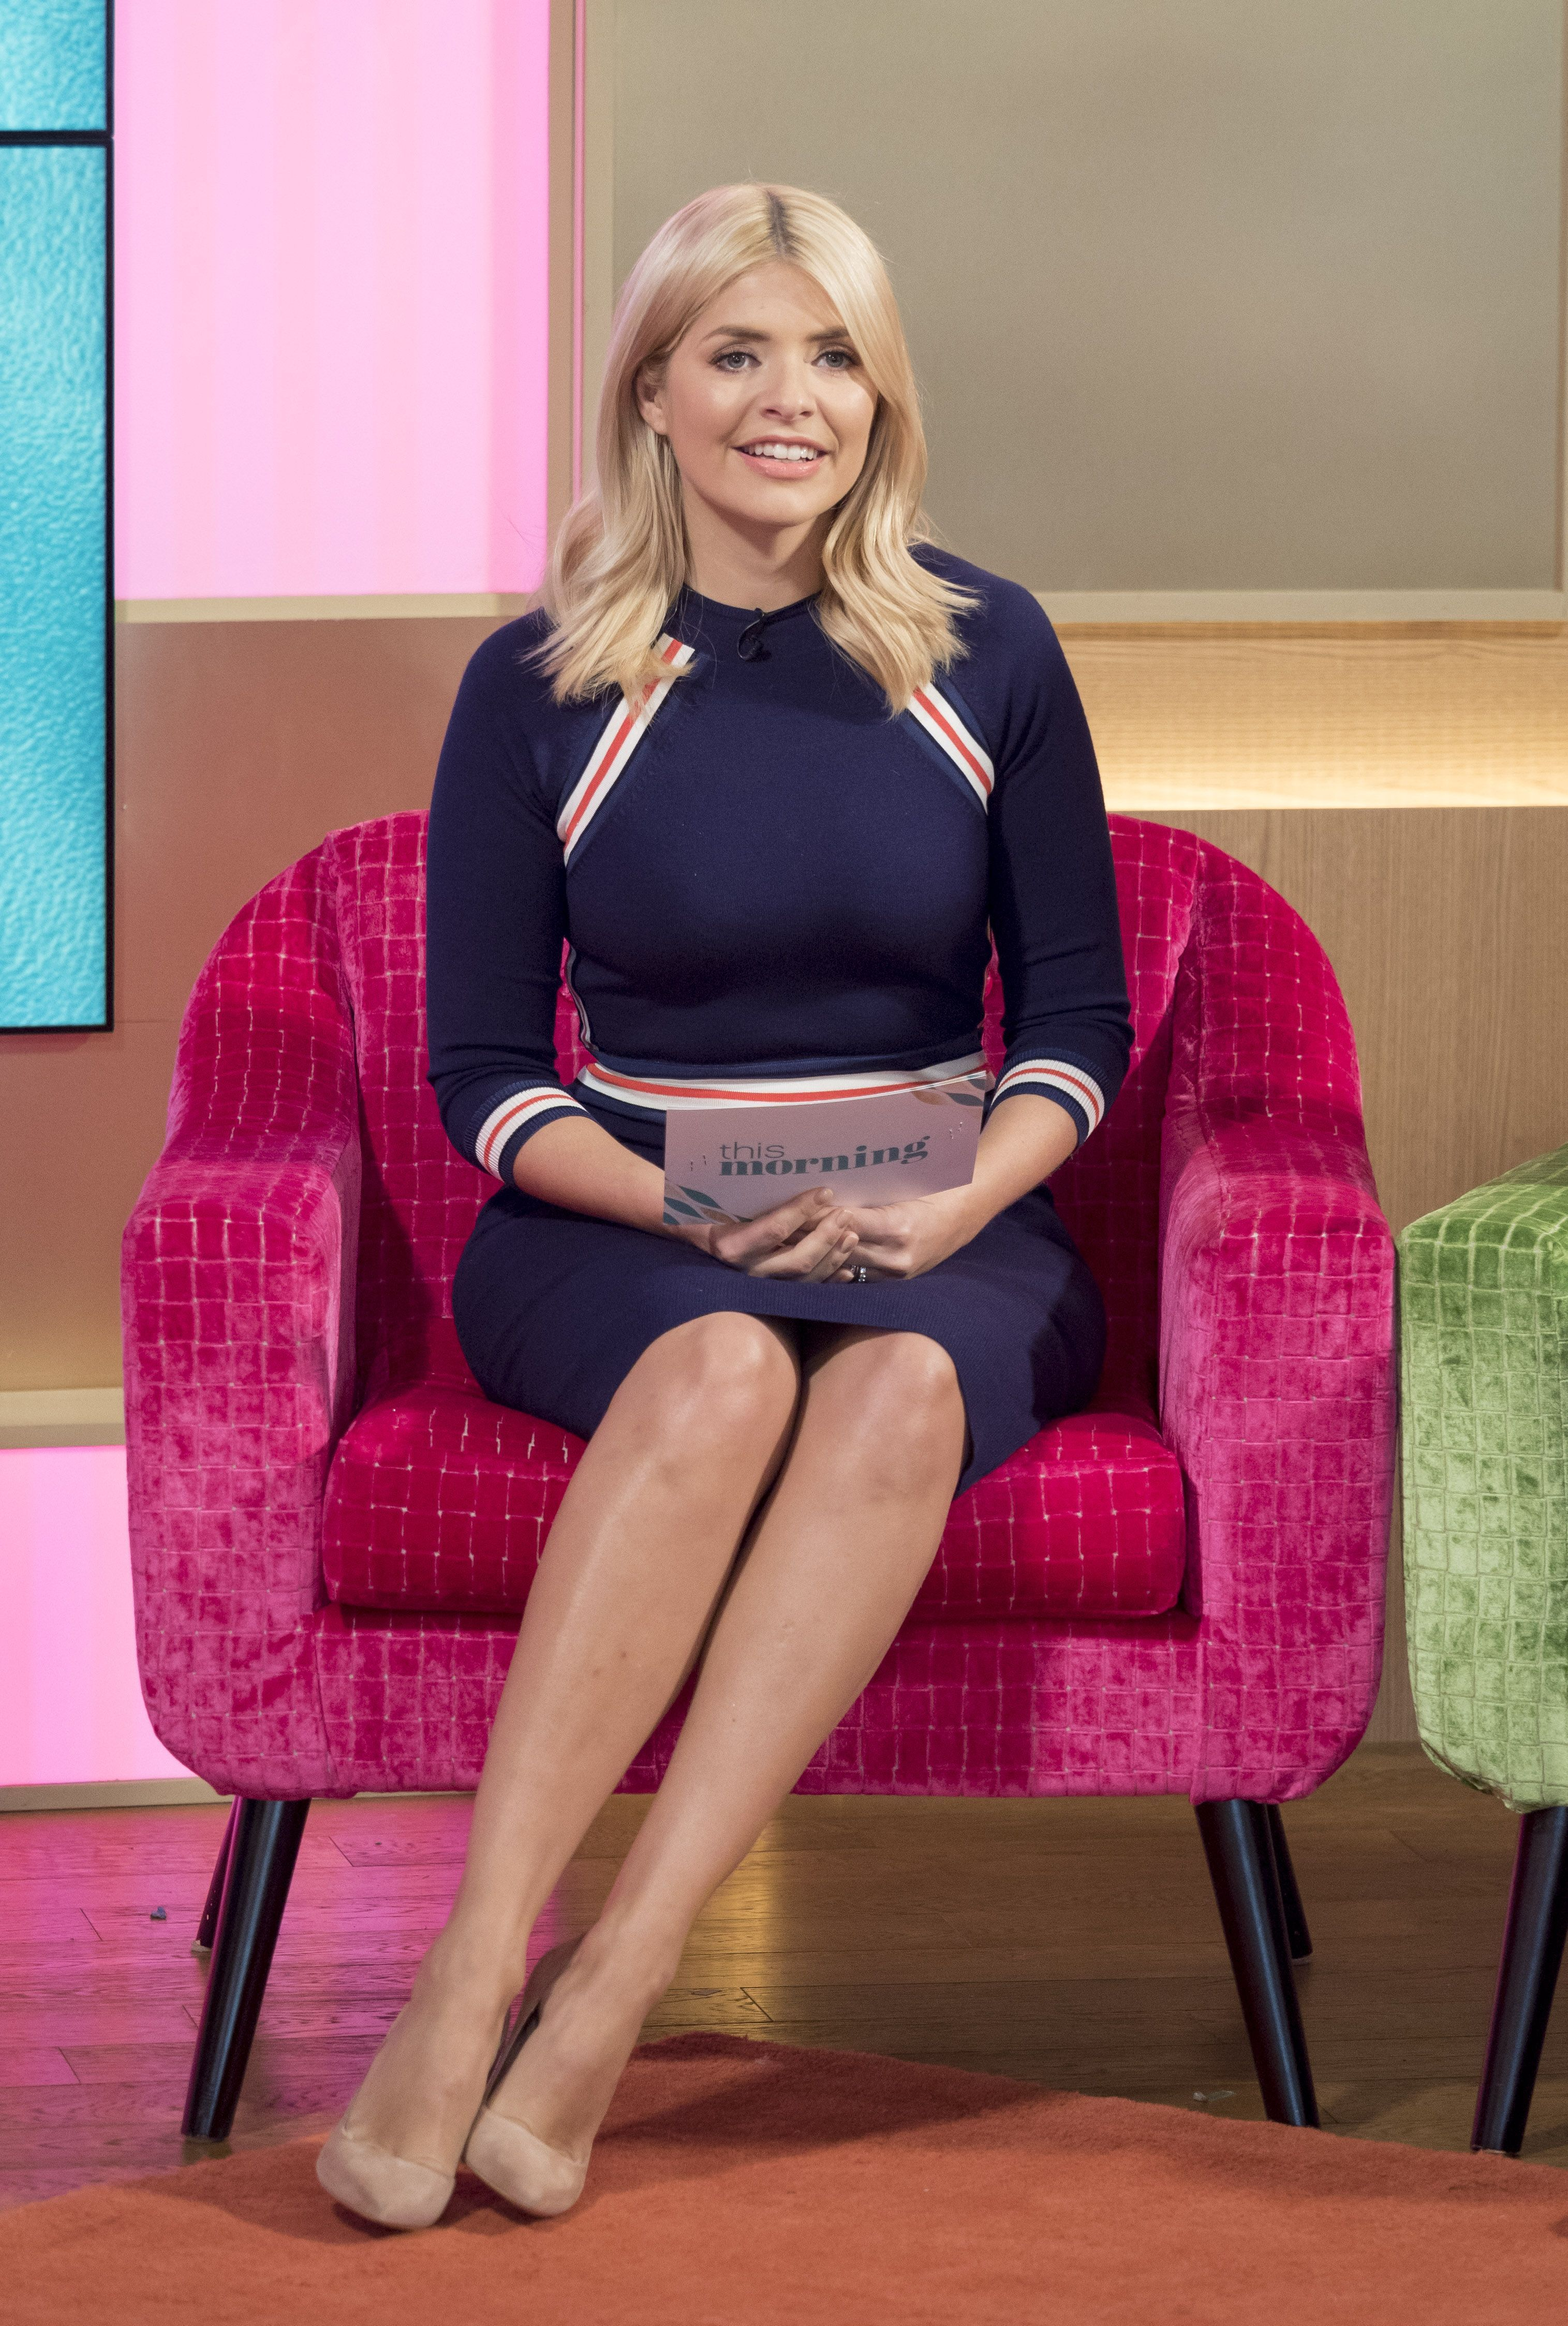 Holly Willoughby Nudes within holly willoughby – this morning 02.02.16 | holly wilourghby